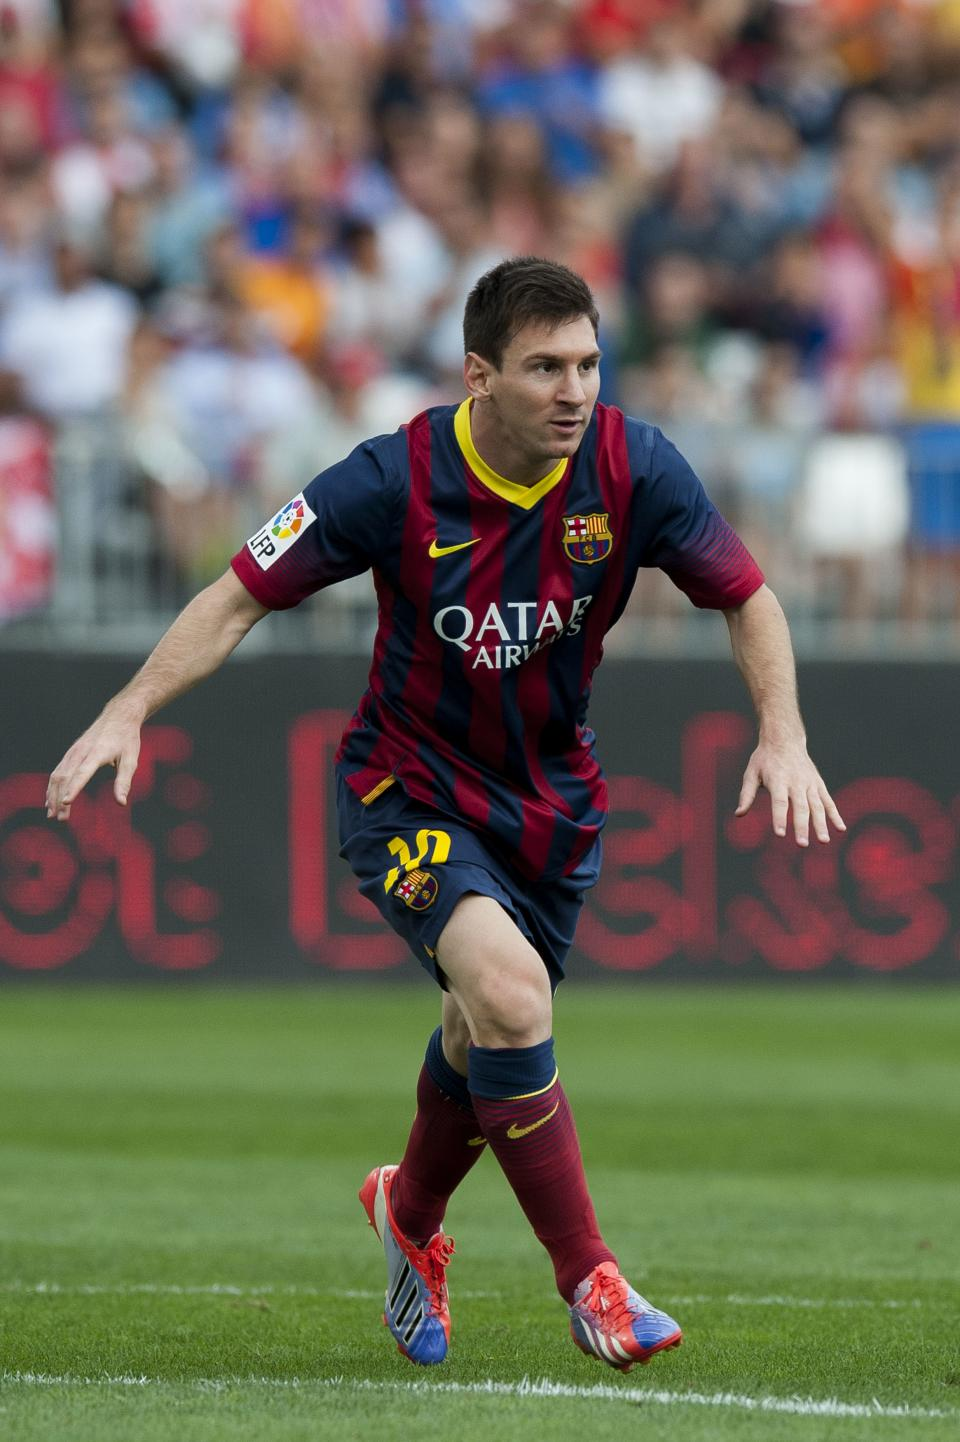 Barcelona's Messi out for 2-3 weeks with injury